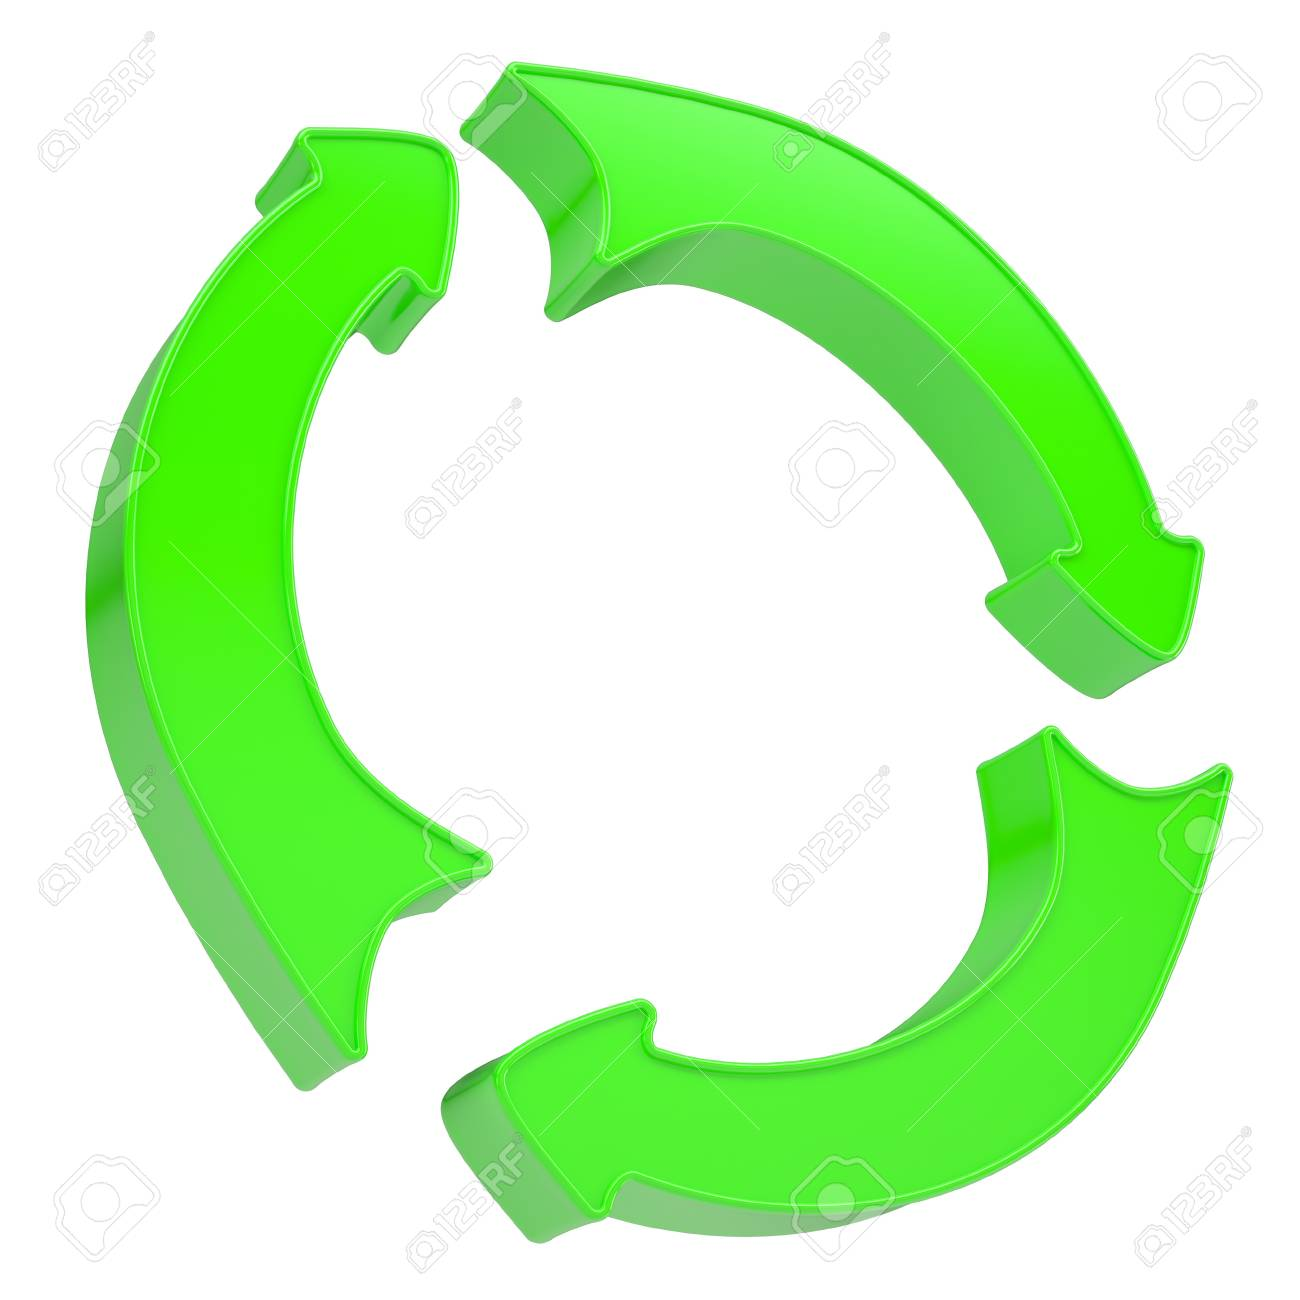 Three green arrows rotating around  Isolated render on a white background Stock Photo - 17031914